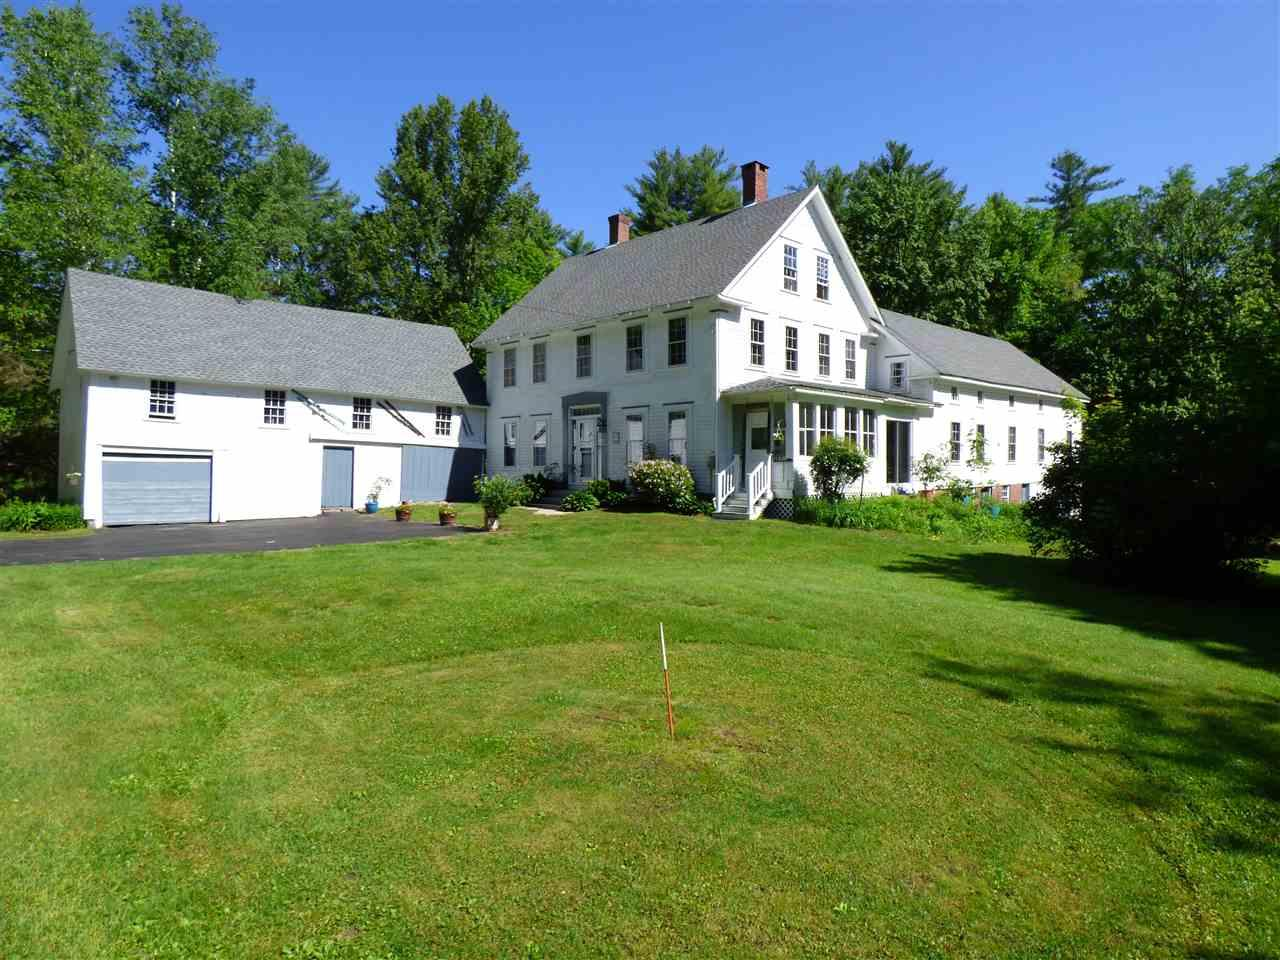 112 Morse Hill Rd Newbury Nh Mls 4640210 Better Homes And Gardens Real Estate